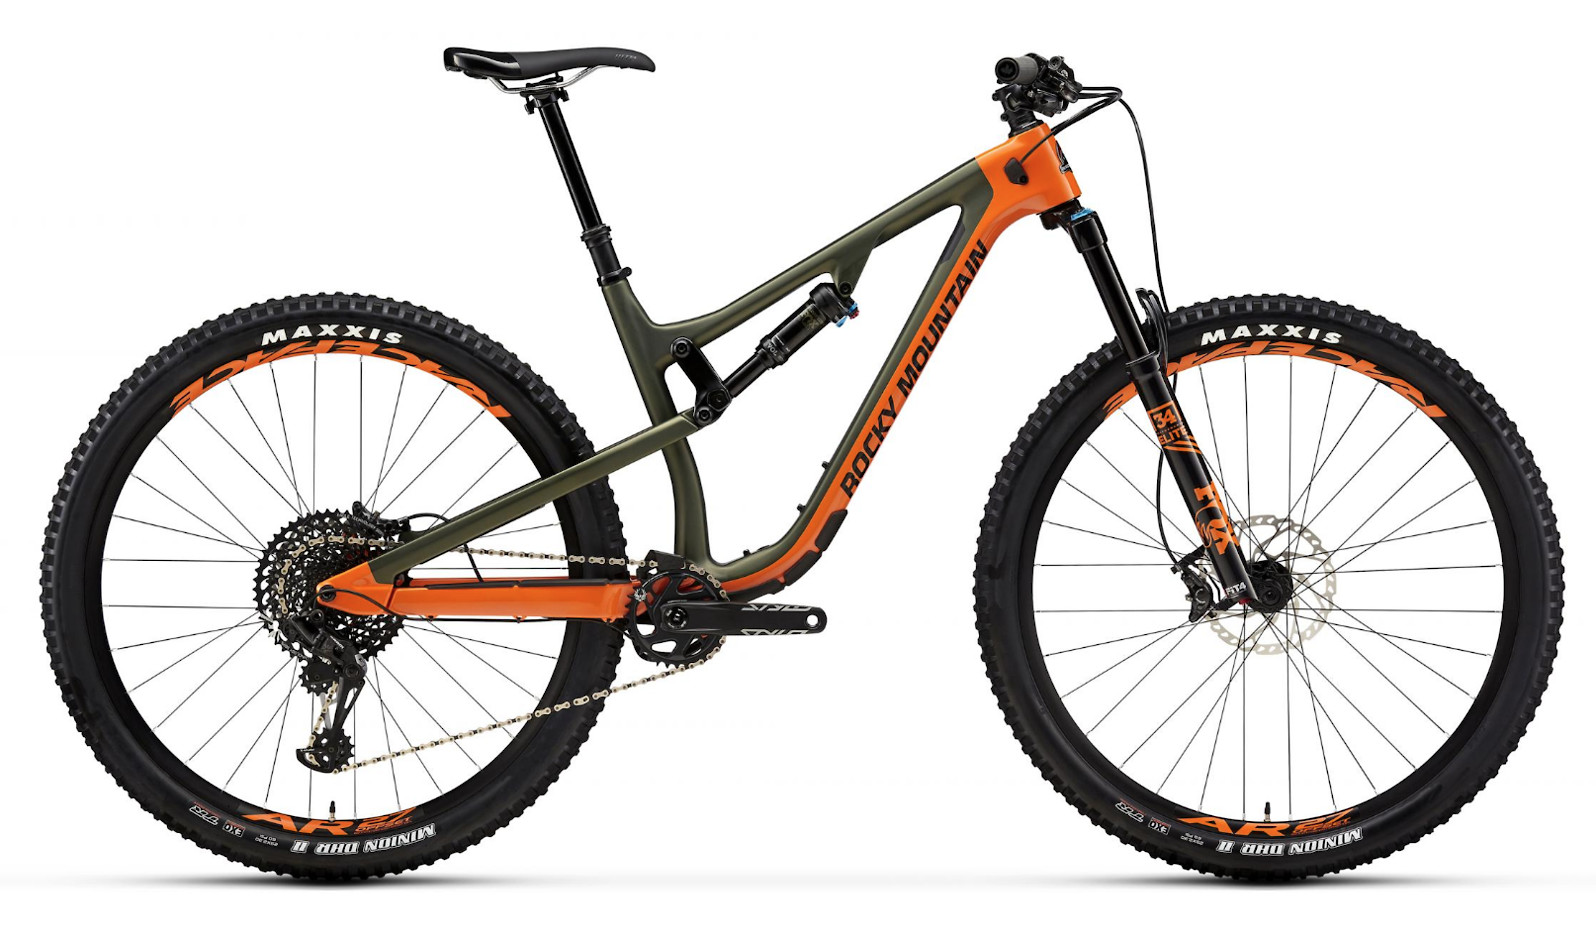 2019 Rocky Mountain Instinct Carbon 70 - Orange and green